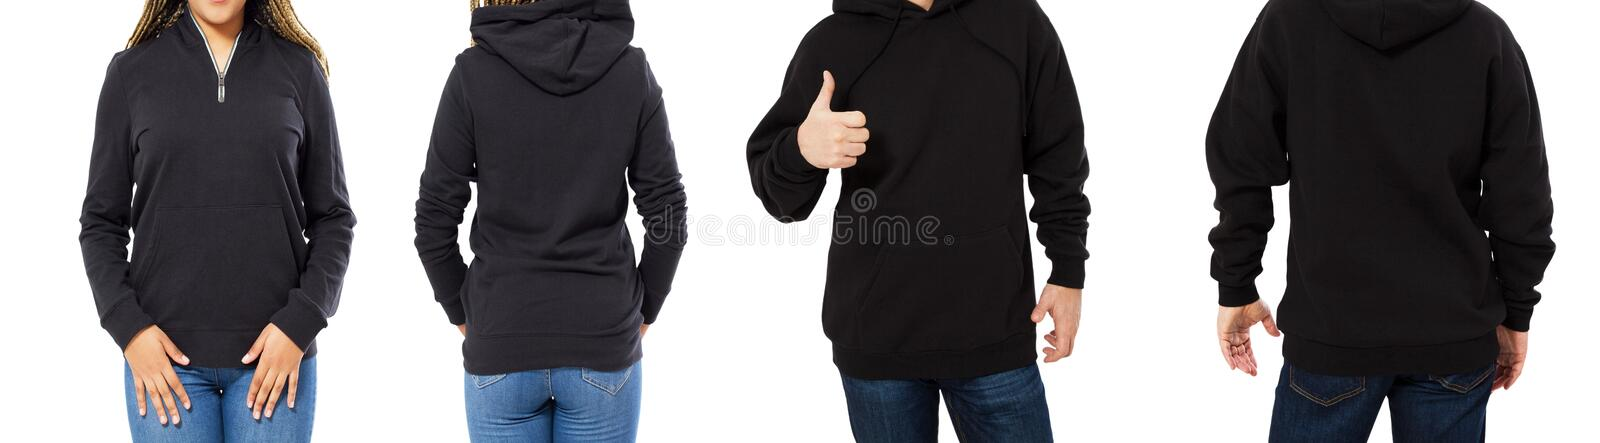 Female and male hoodie mock up isolated - hood set front and back view, girl and man in empty black pullover royalty free stock images